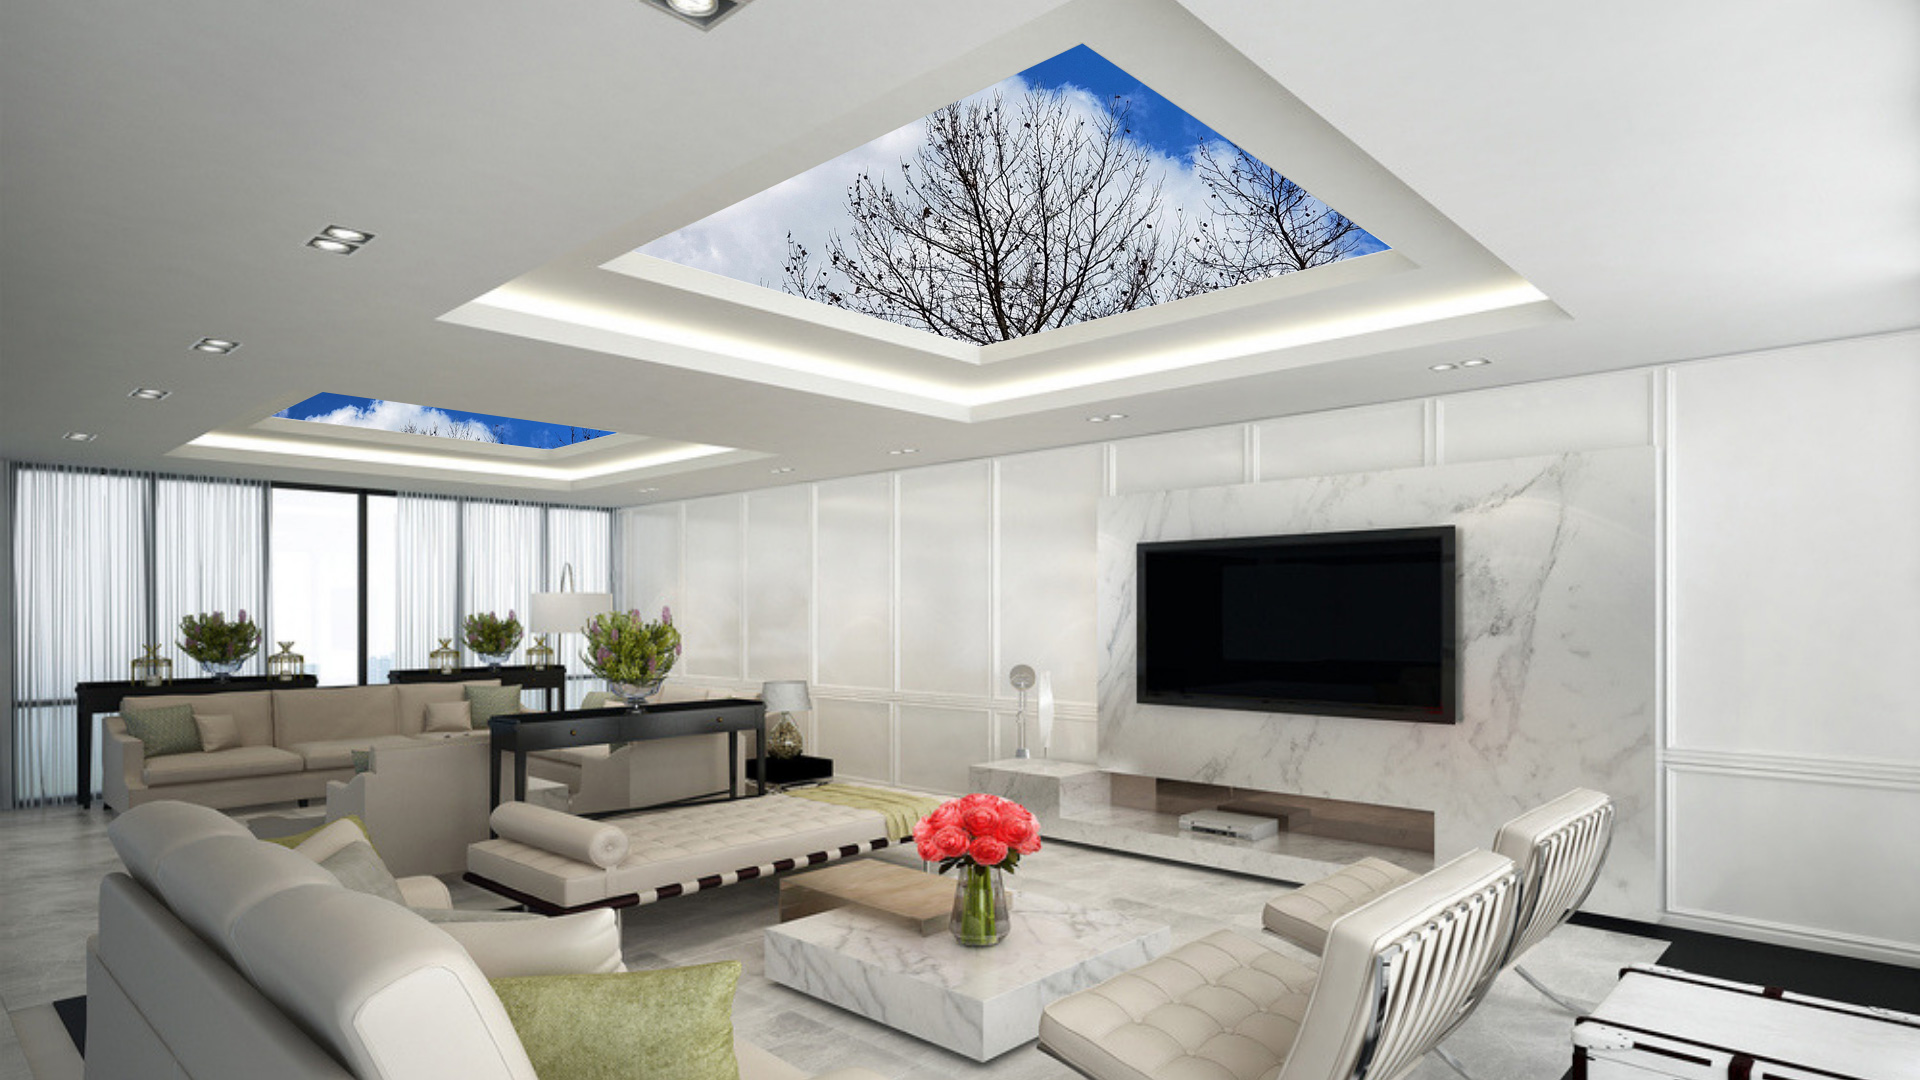 Ceiling Wallpaper Designs Ceiling Wall Decorations in Hyderabad 1920x1080